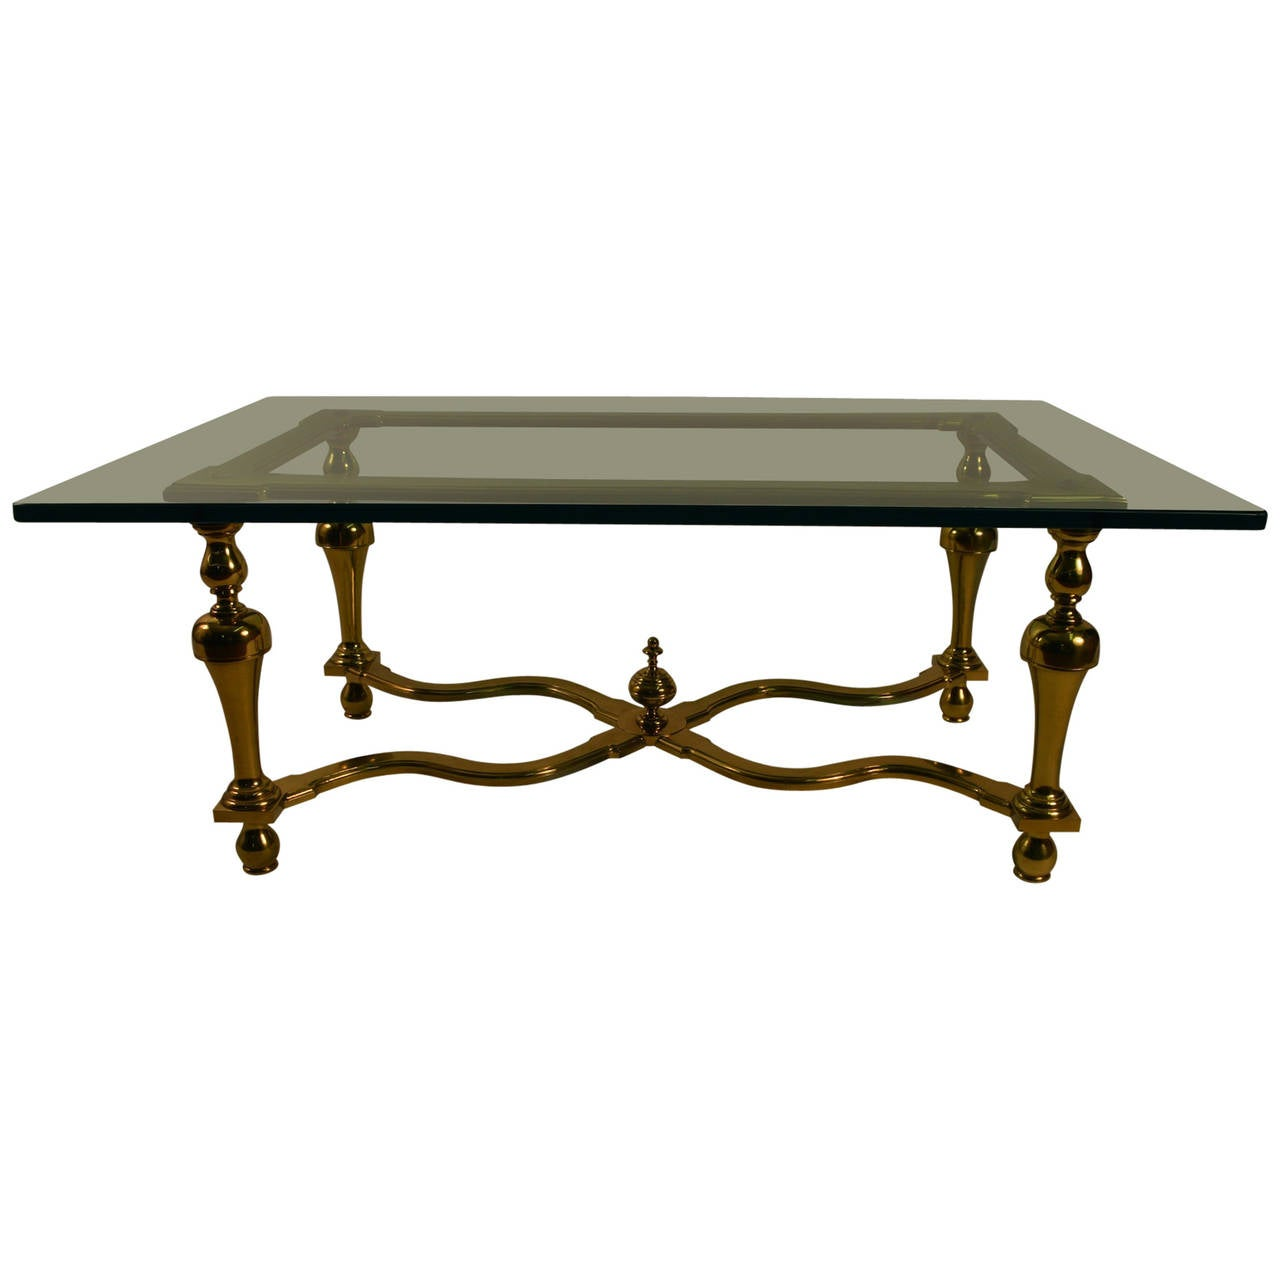 Brass and Glass Coffee or Cocktail Table